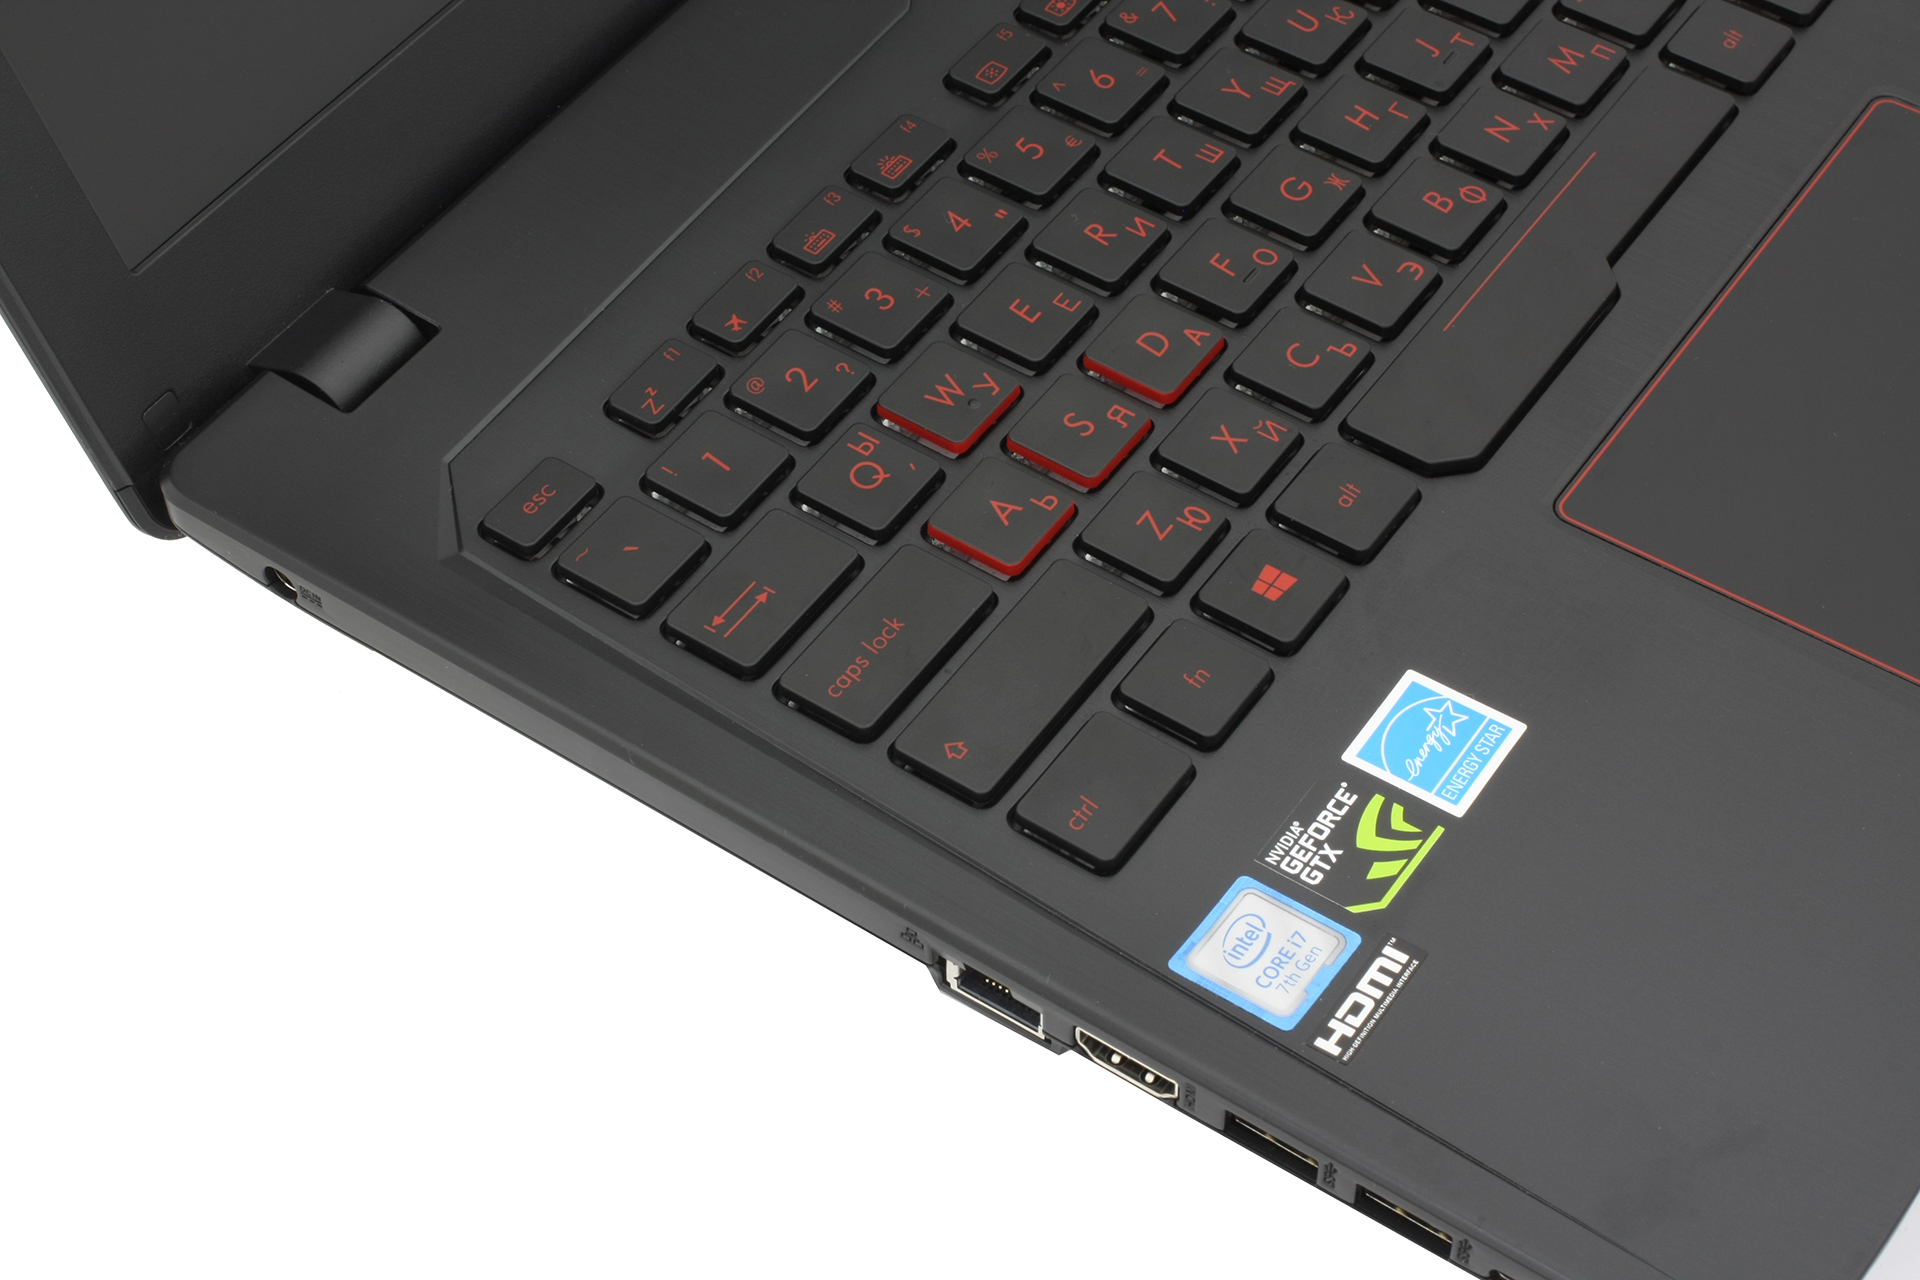 How to change FX53VD-RS71 (settings show GL553 VD) rog